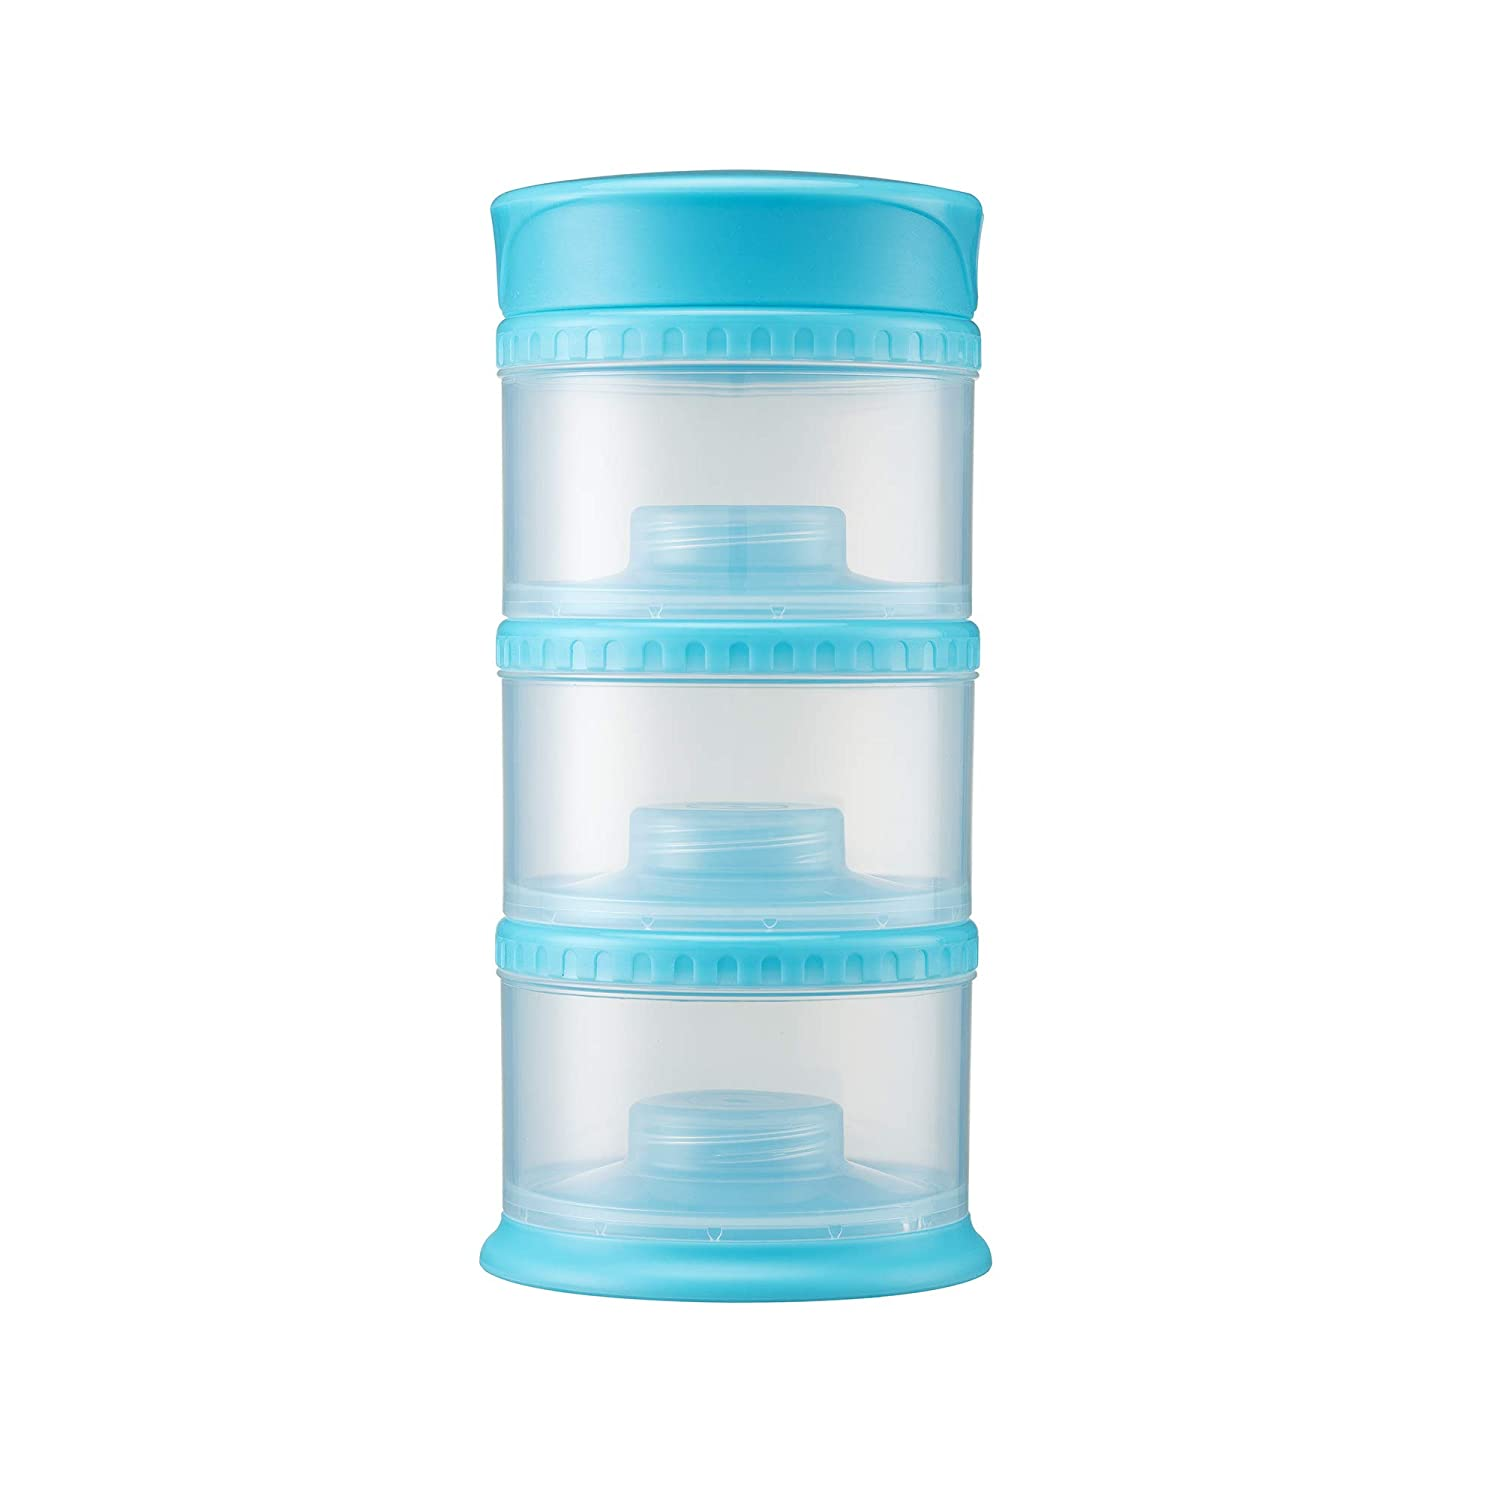 Innobaby Packin' Smart Stackable and Portable Storage System for Formula, Liquid, Baby Snacks and More. 3 Stackable Cups in Blueberry. BPA Free, 12 Ounce